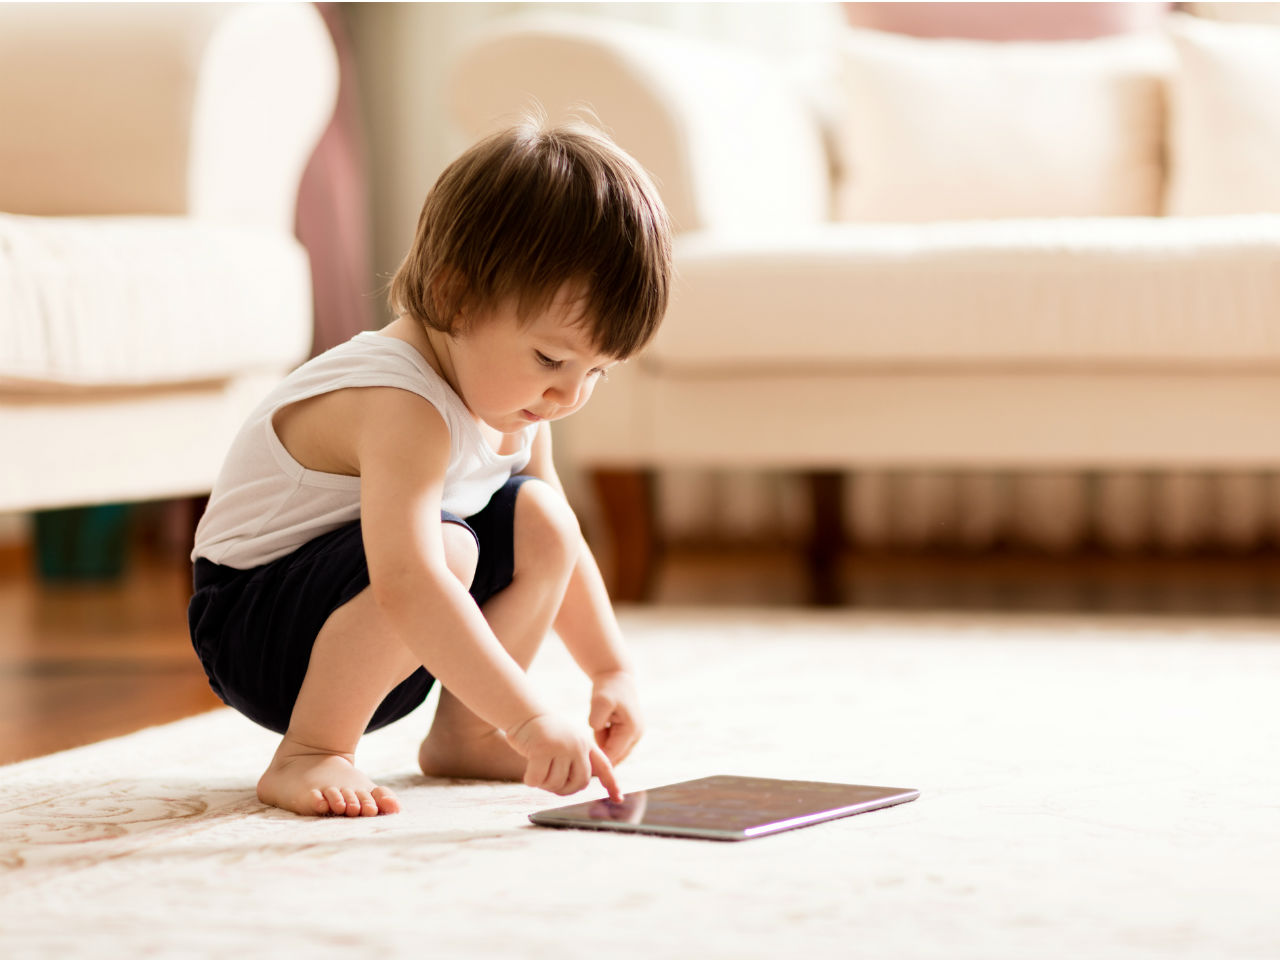 touchscreens-are-bad-for-toddlers-and-babies-sleep